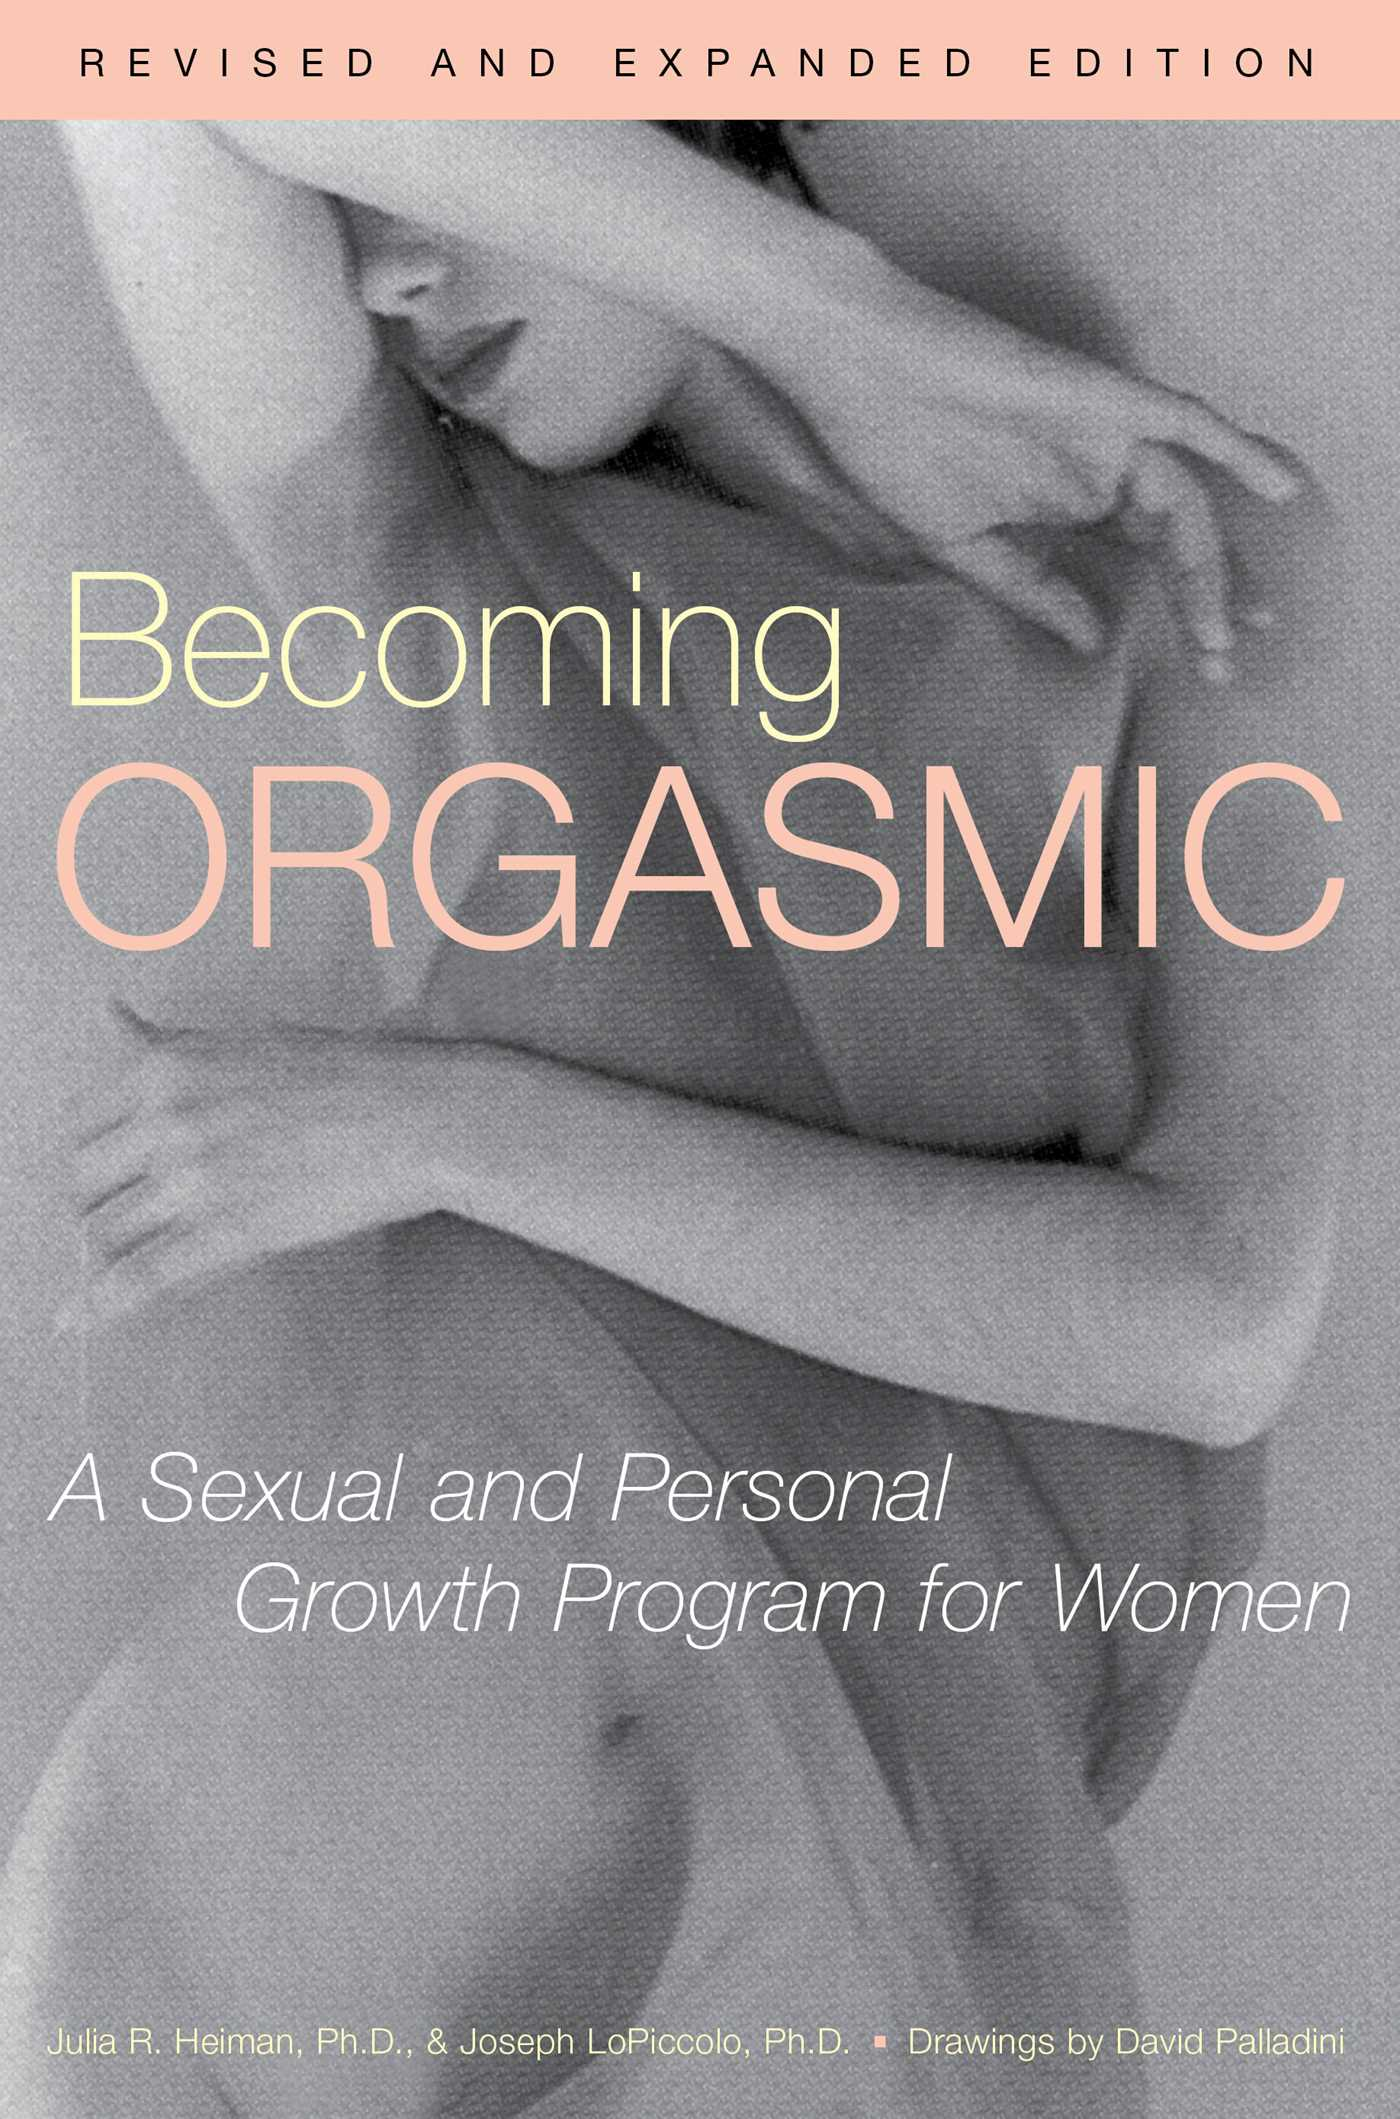 Becoming orgasmic 9780671761776 hr